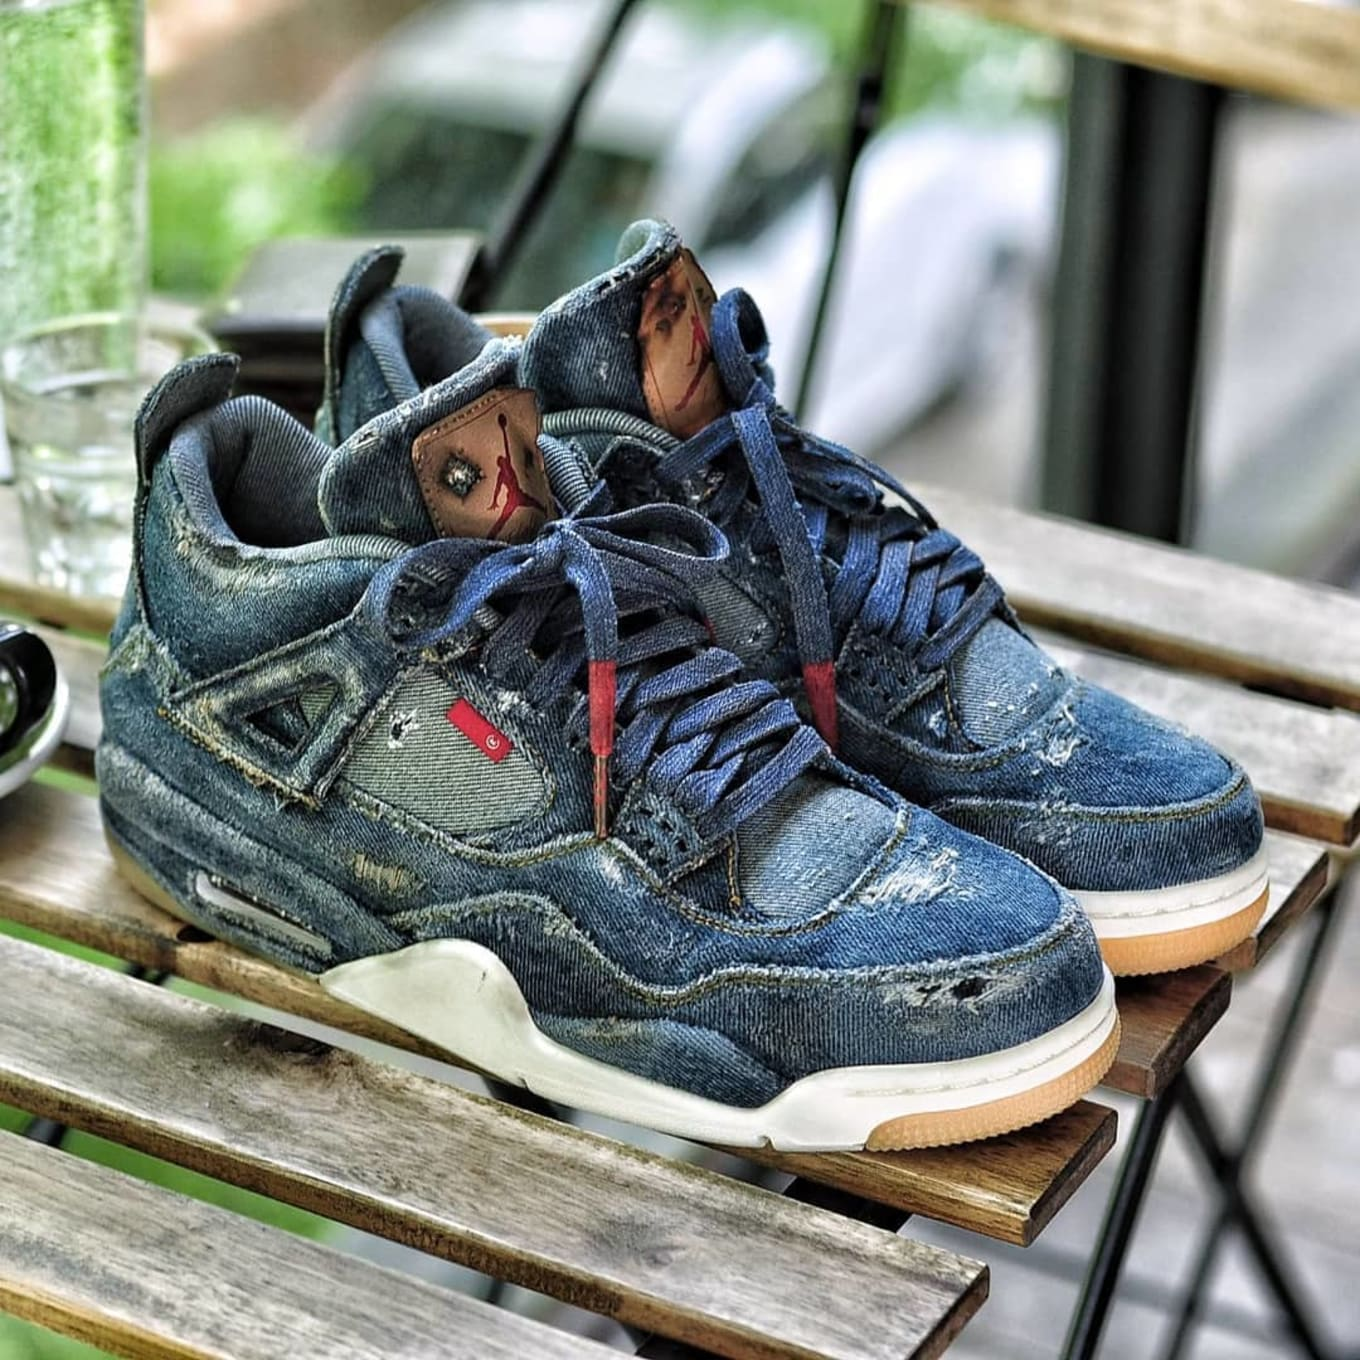 meet 2f3d4 10762 Custom Levi's x Air Jordan 4 | Sole Collector